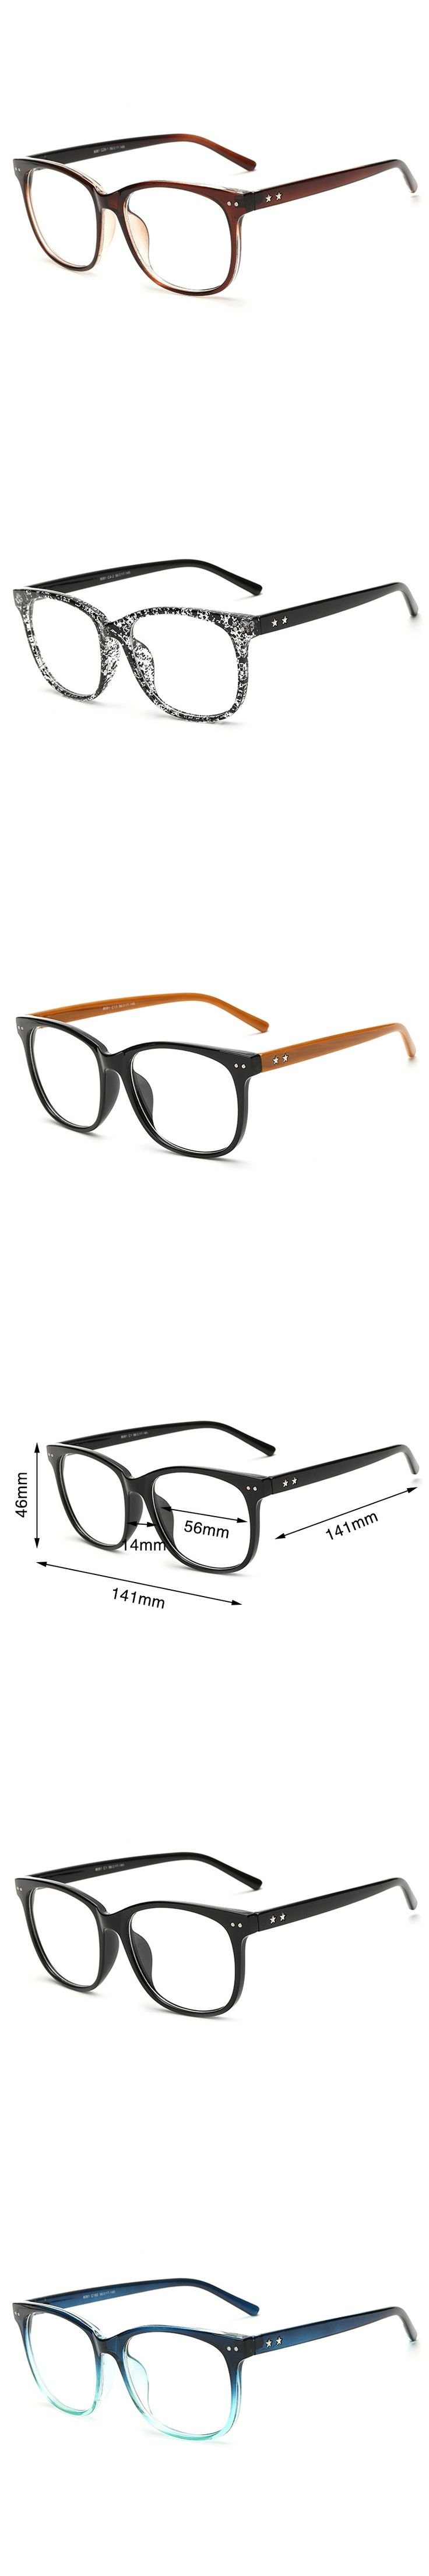 how to clean frames of eyeglasses